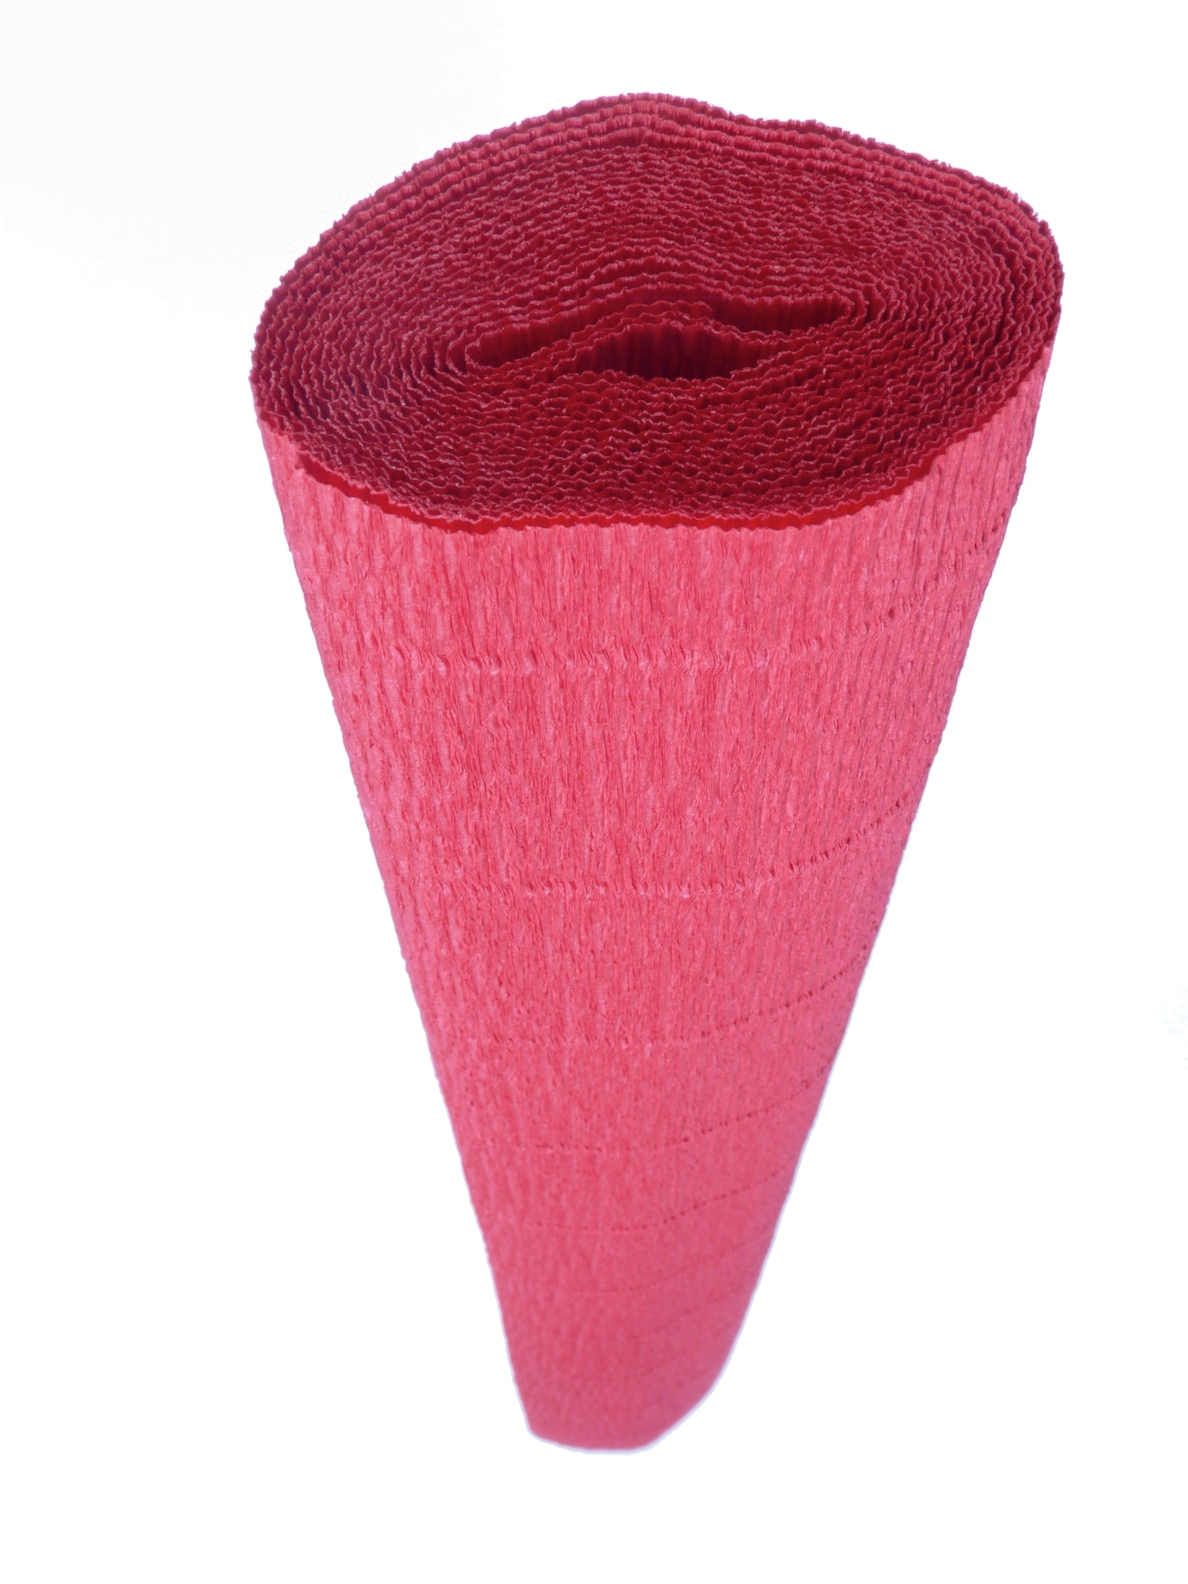 Italian Crepe Paper roll 140 gram Water Resistant - 786 RUBY RED